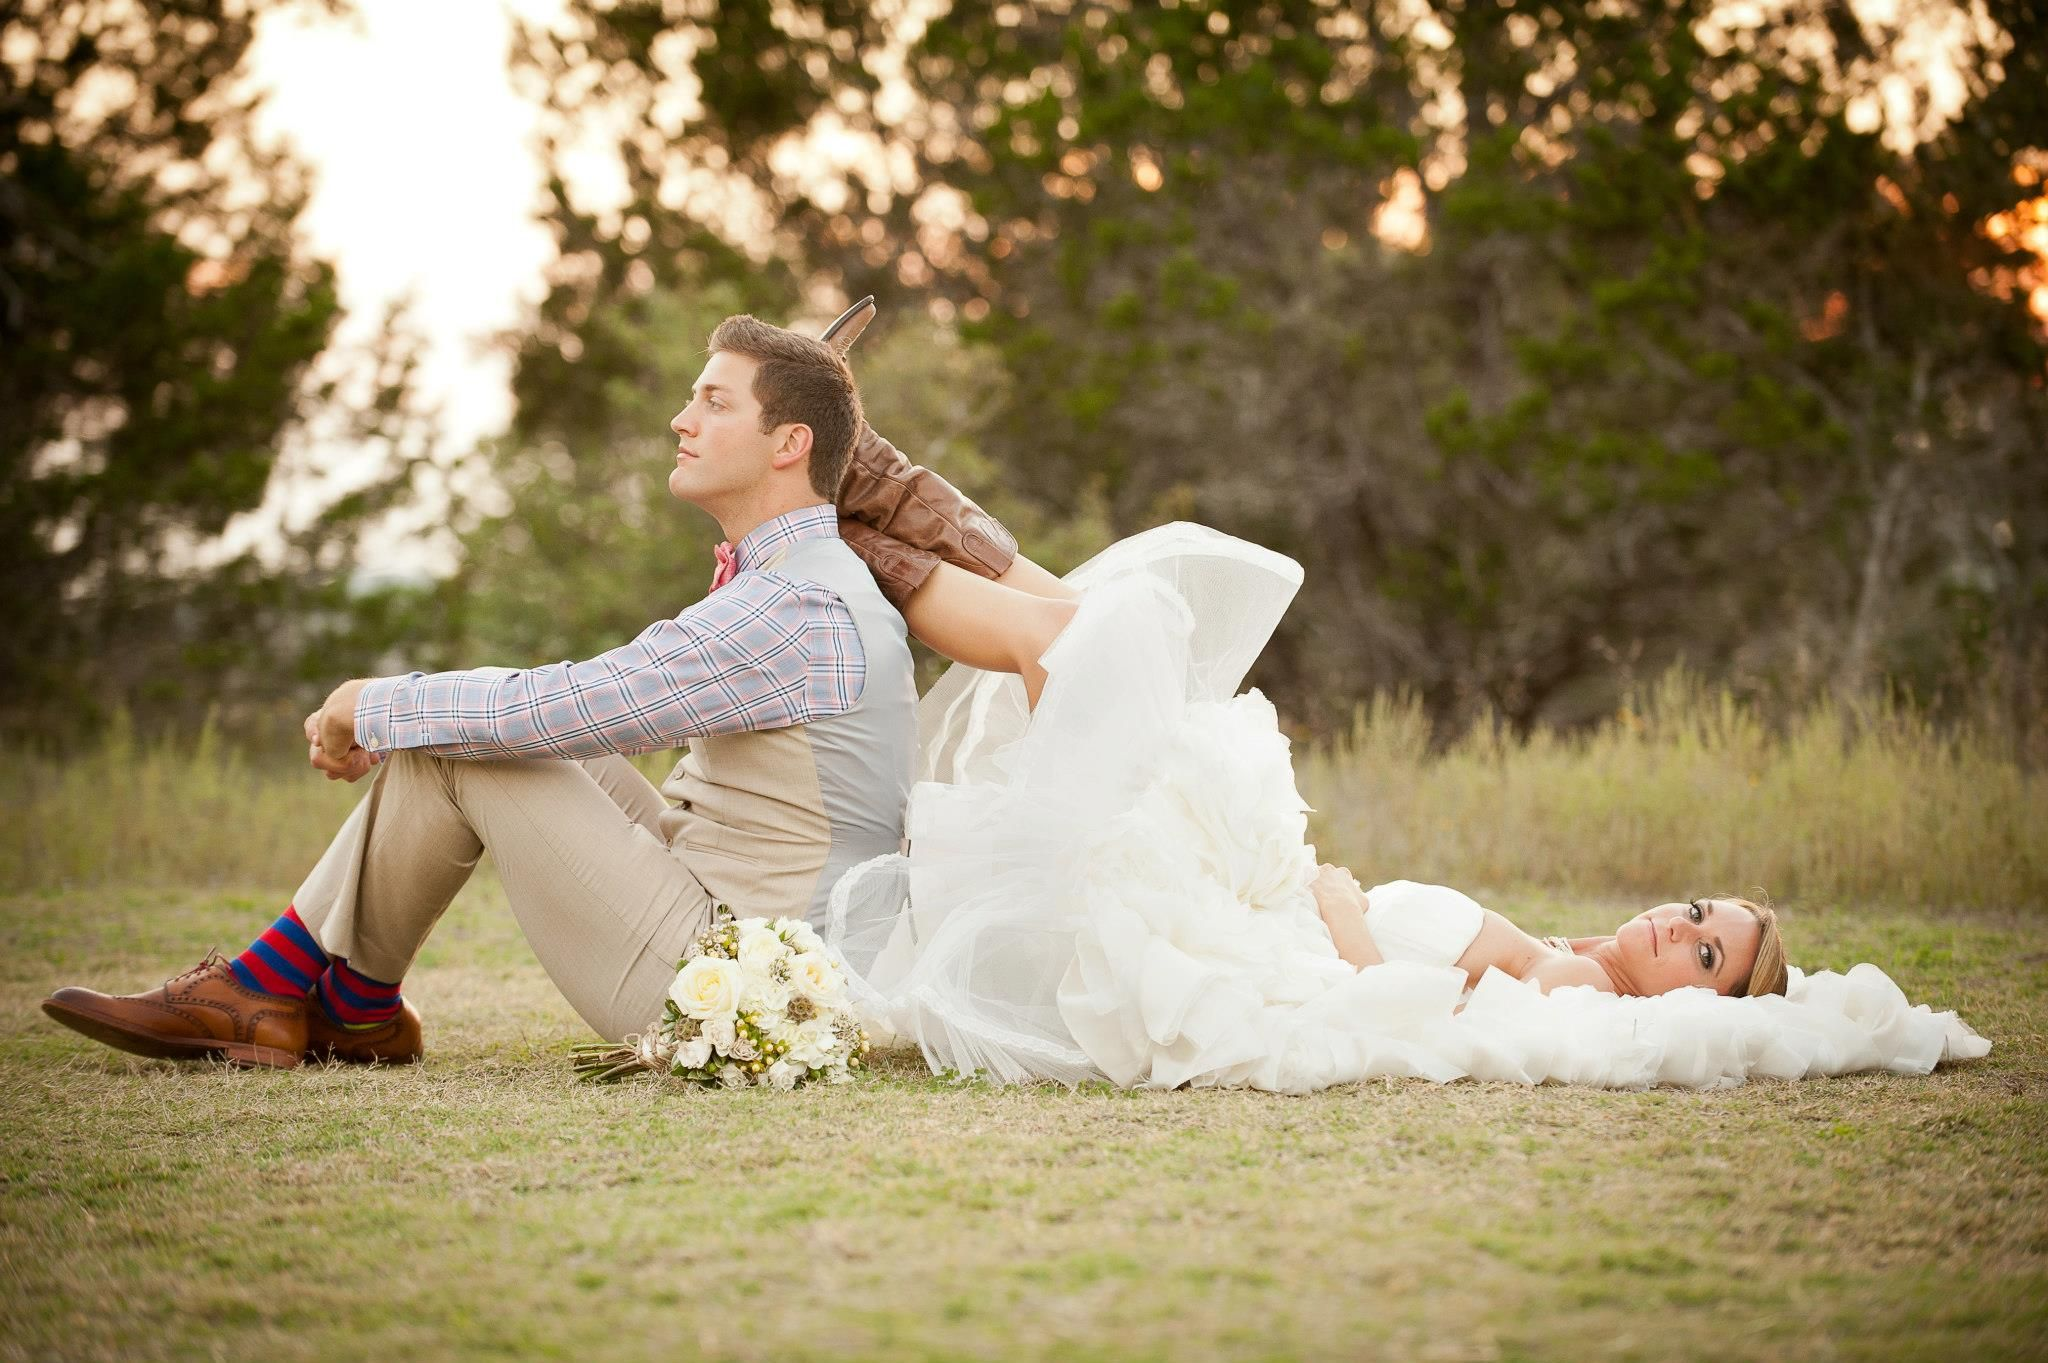 cowgirl boots+wedding dress= perfection